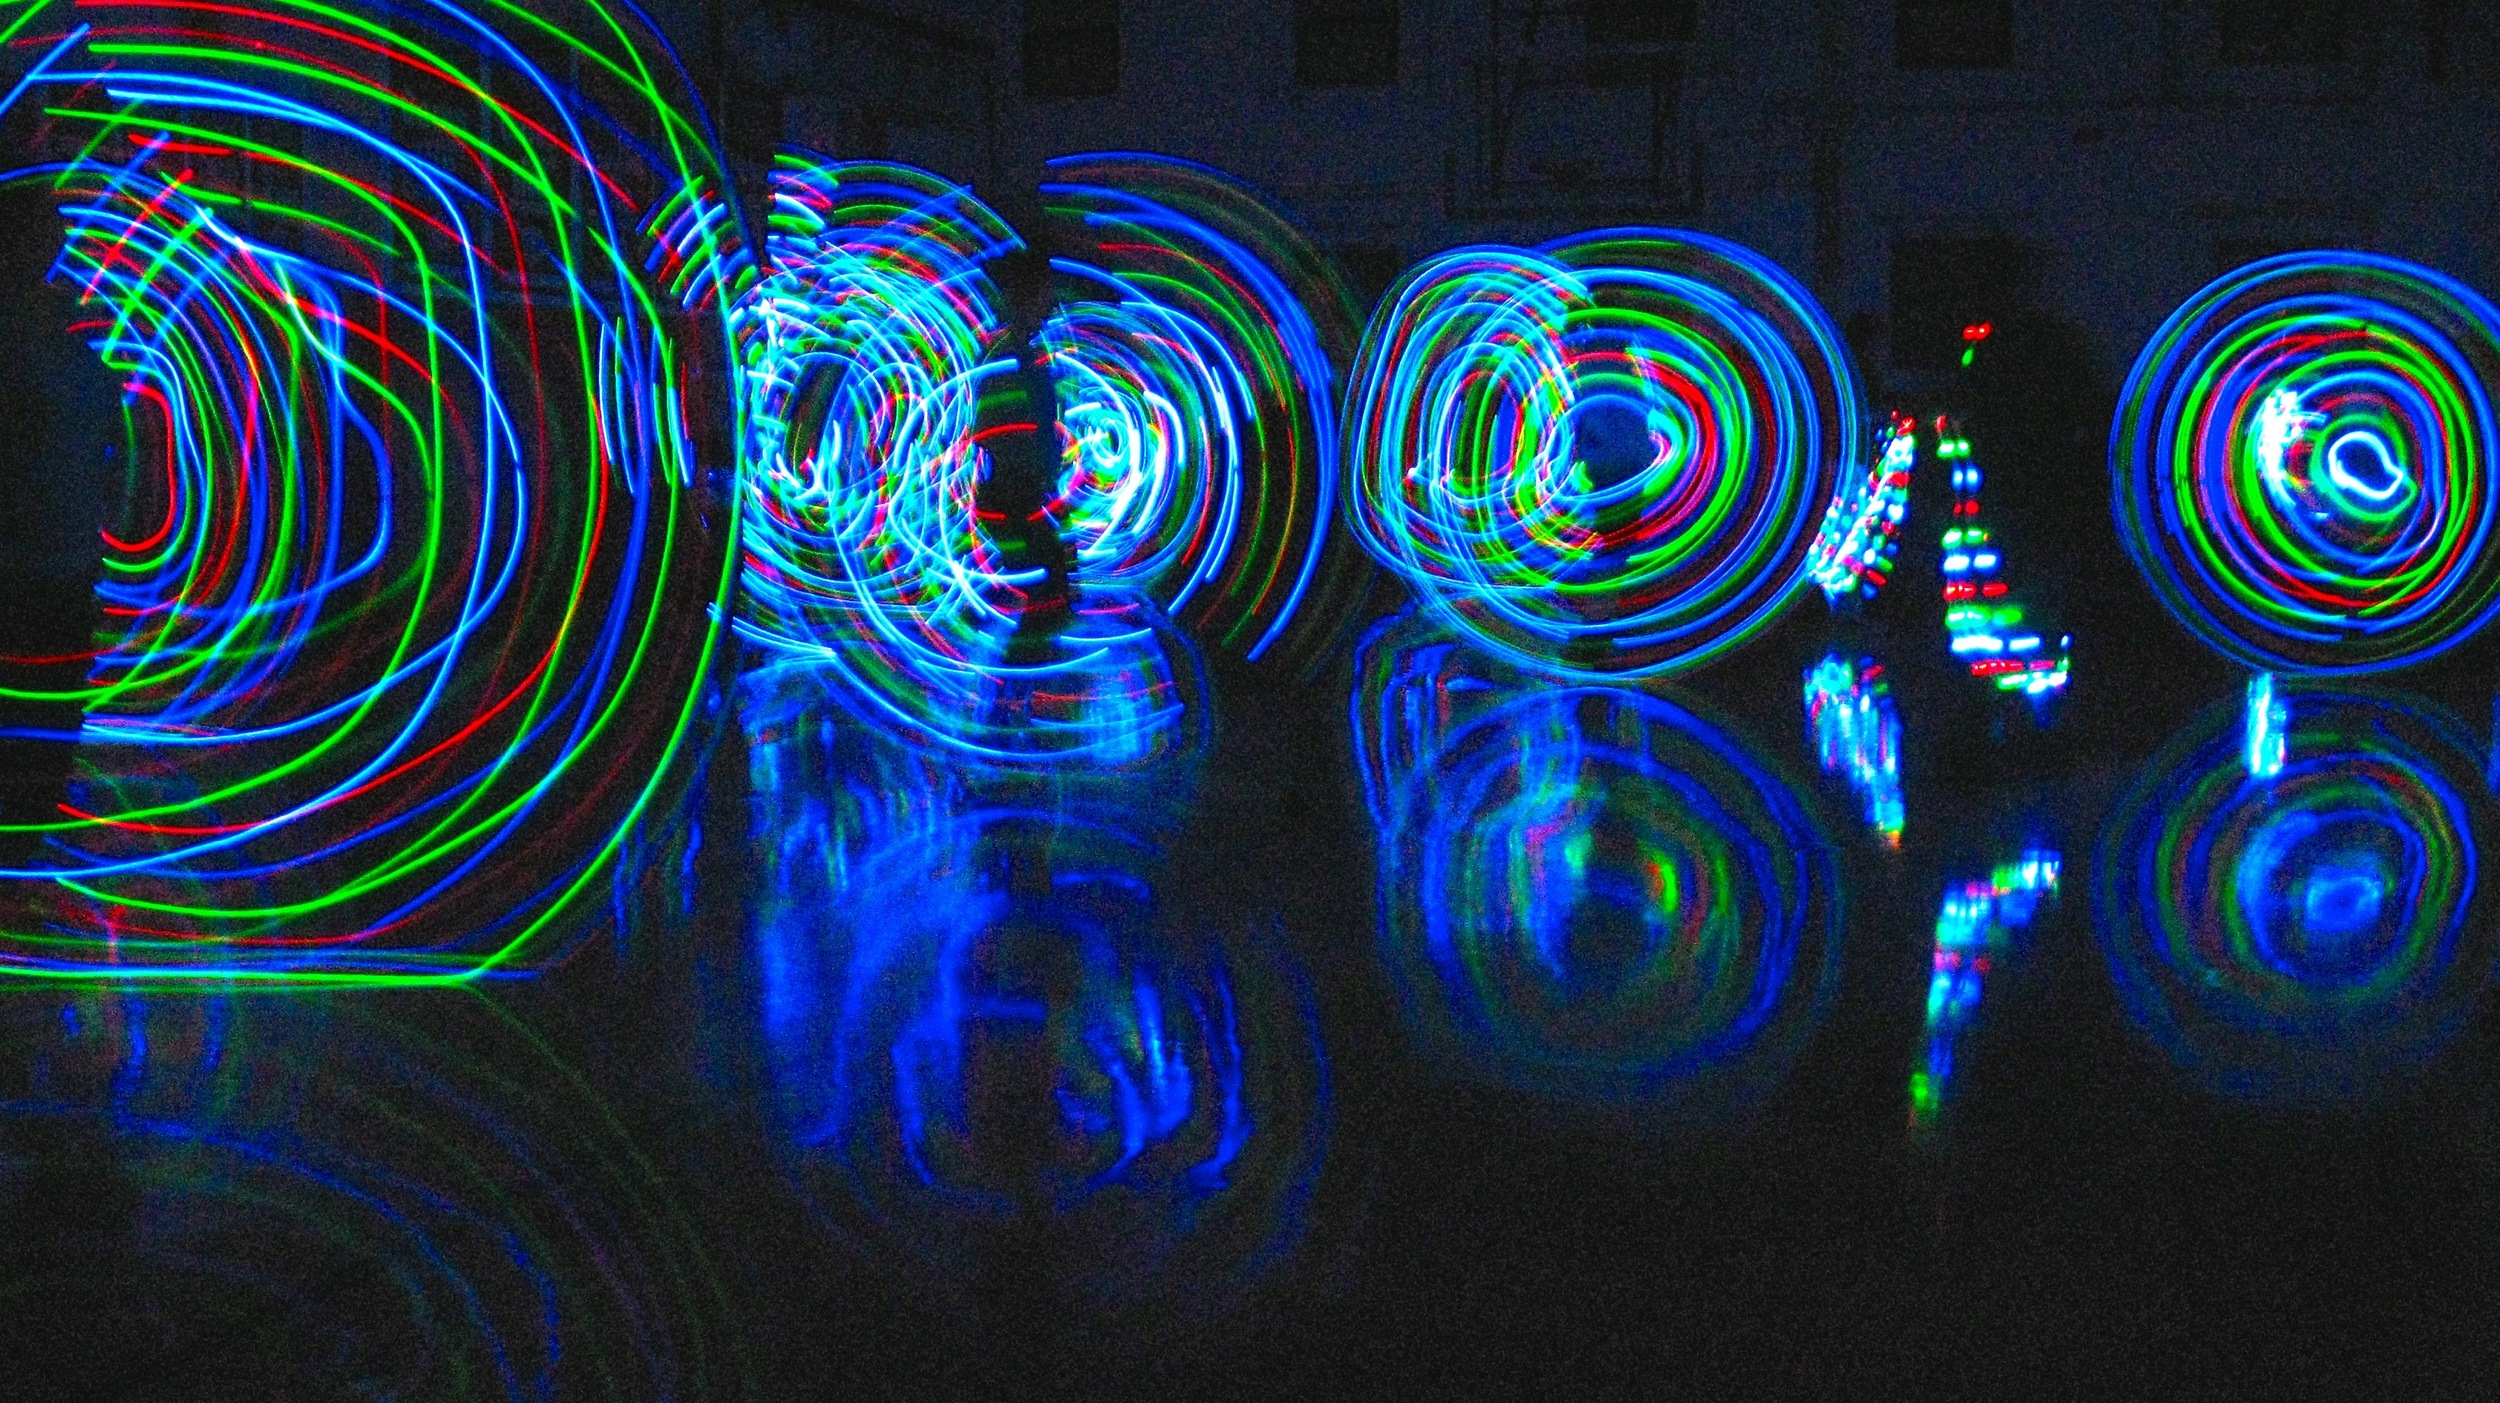 A special Punk Rope fundraiser at the Greenpoint YMCA in Brooklyn with light-up jump ropes.